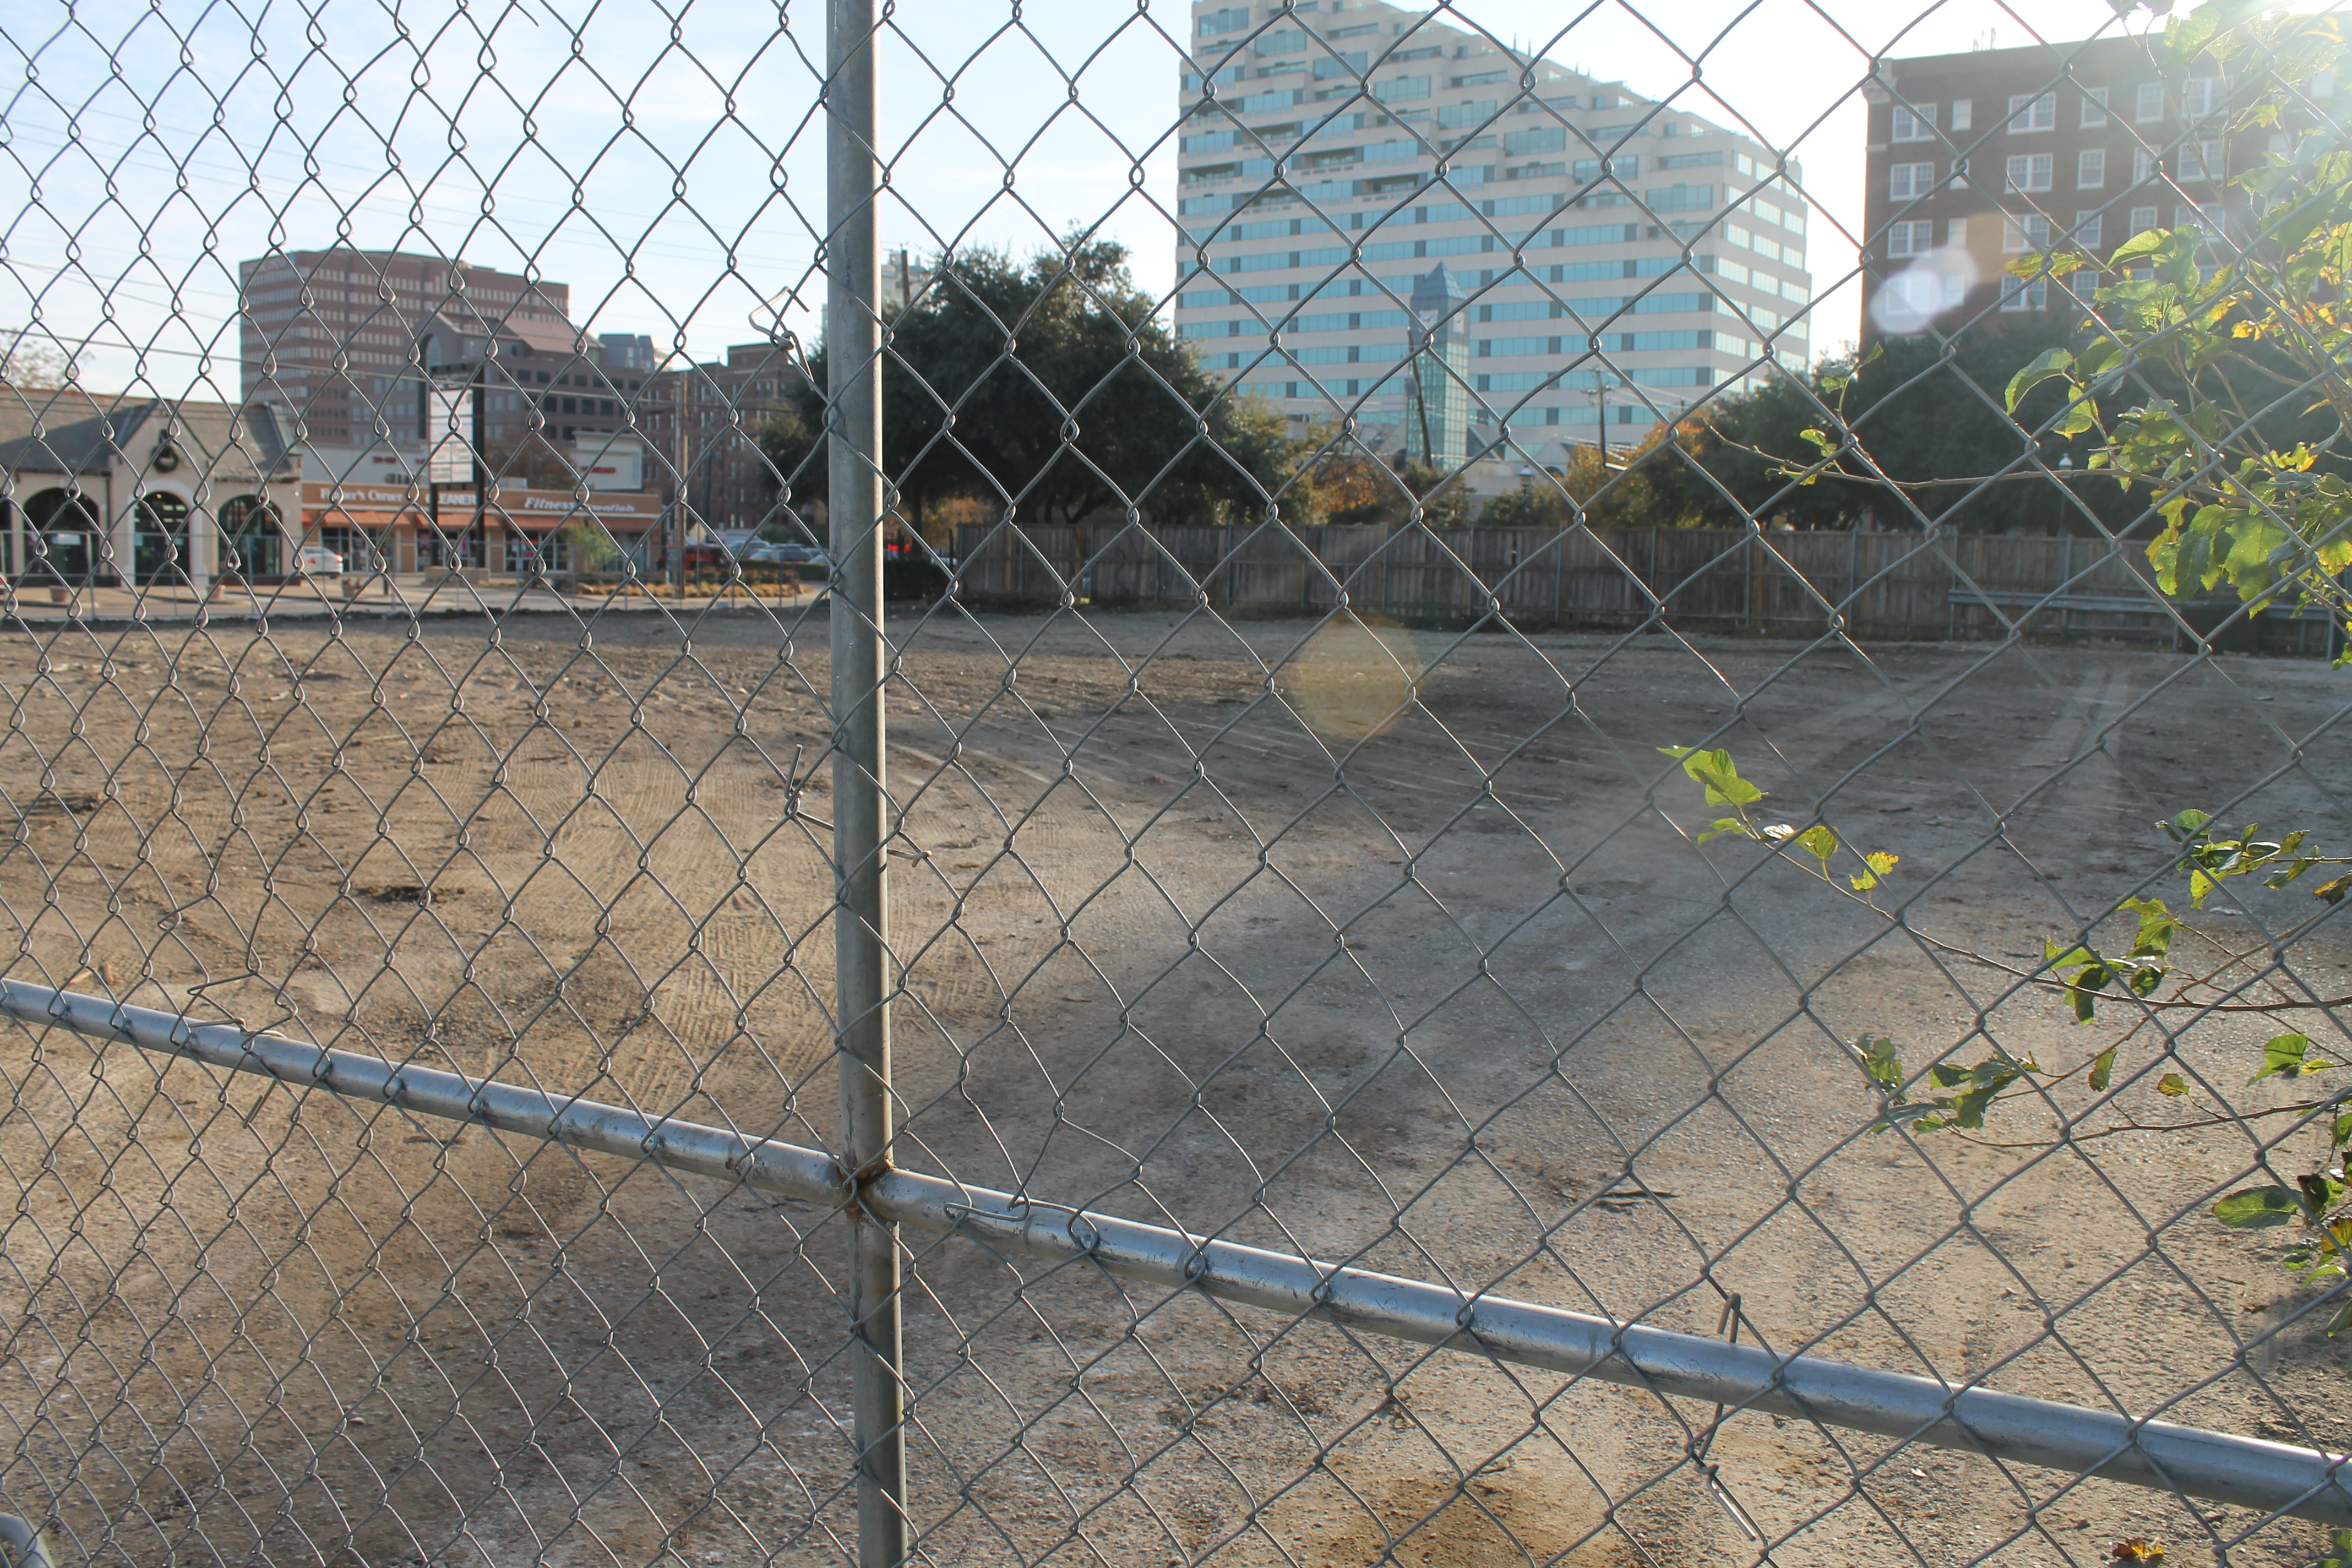 Now that The Bronx has been razed, site to remain vacant for 6 months